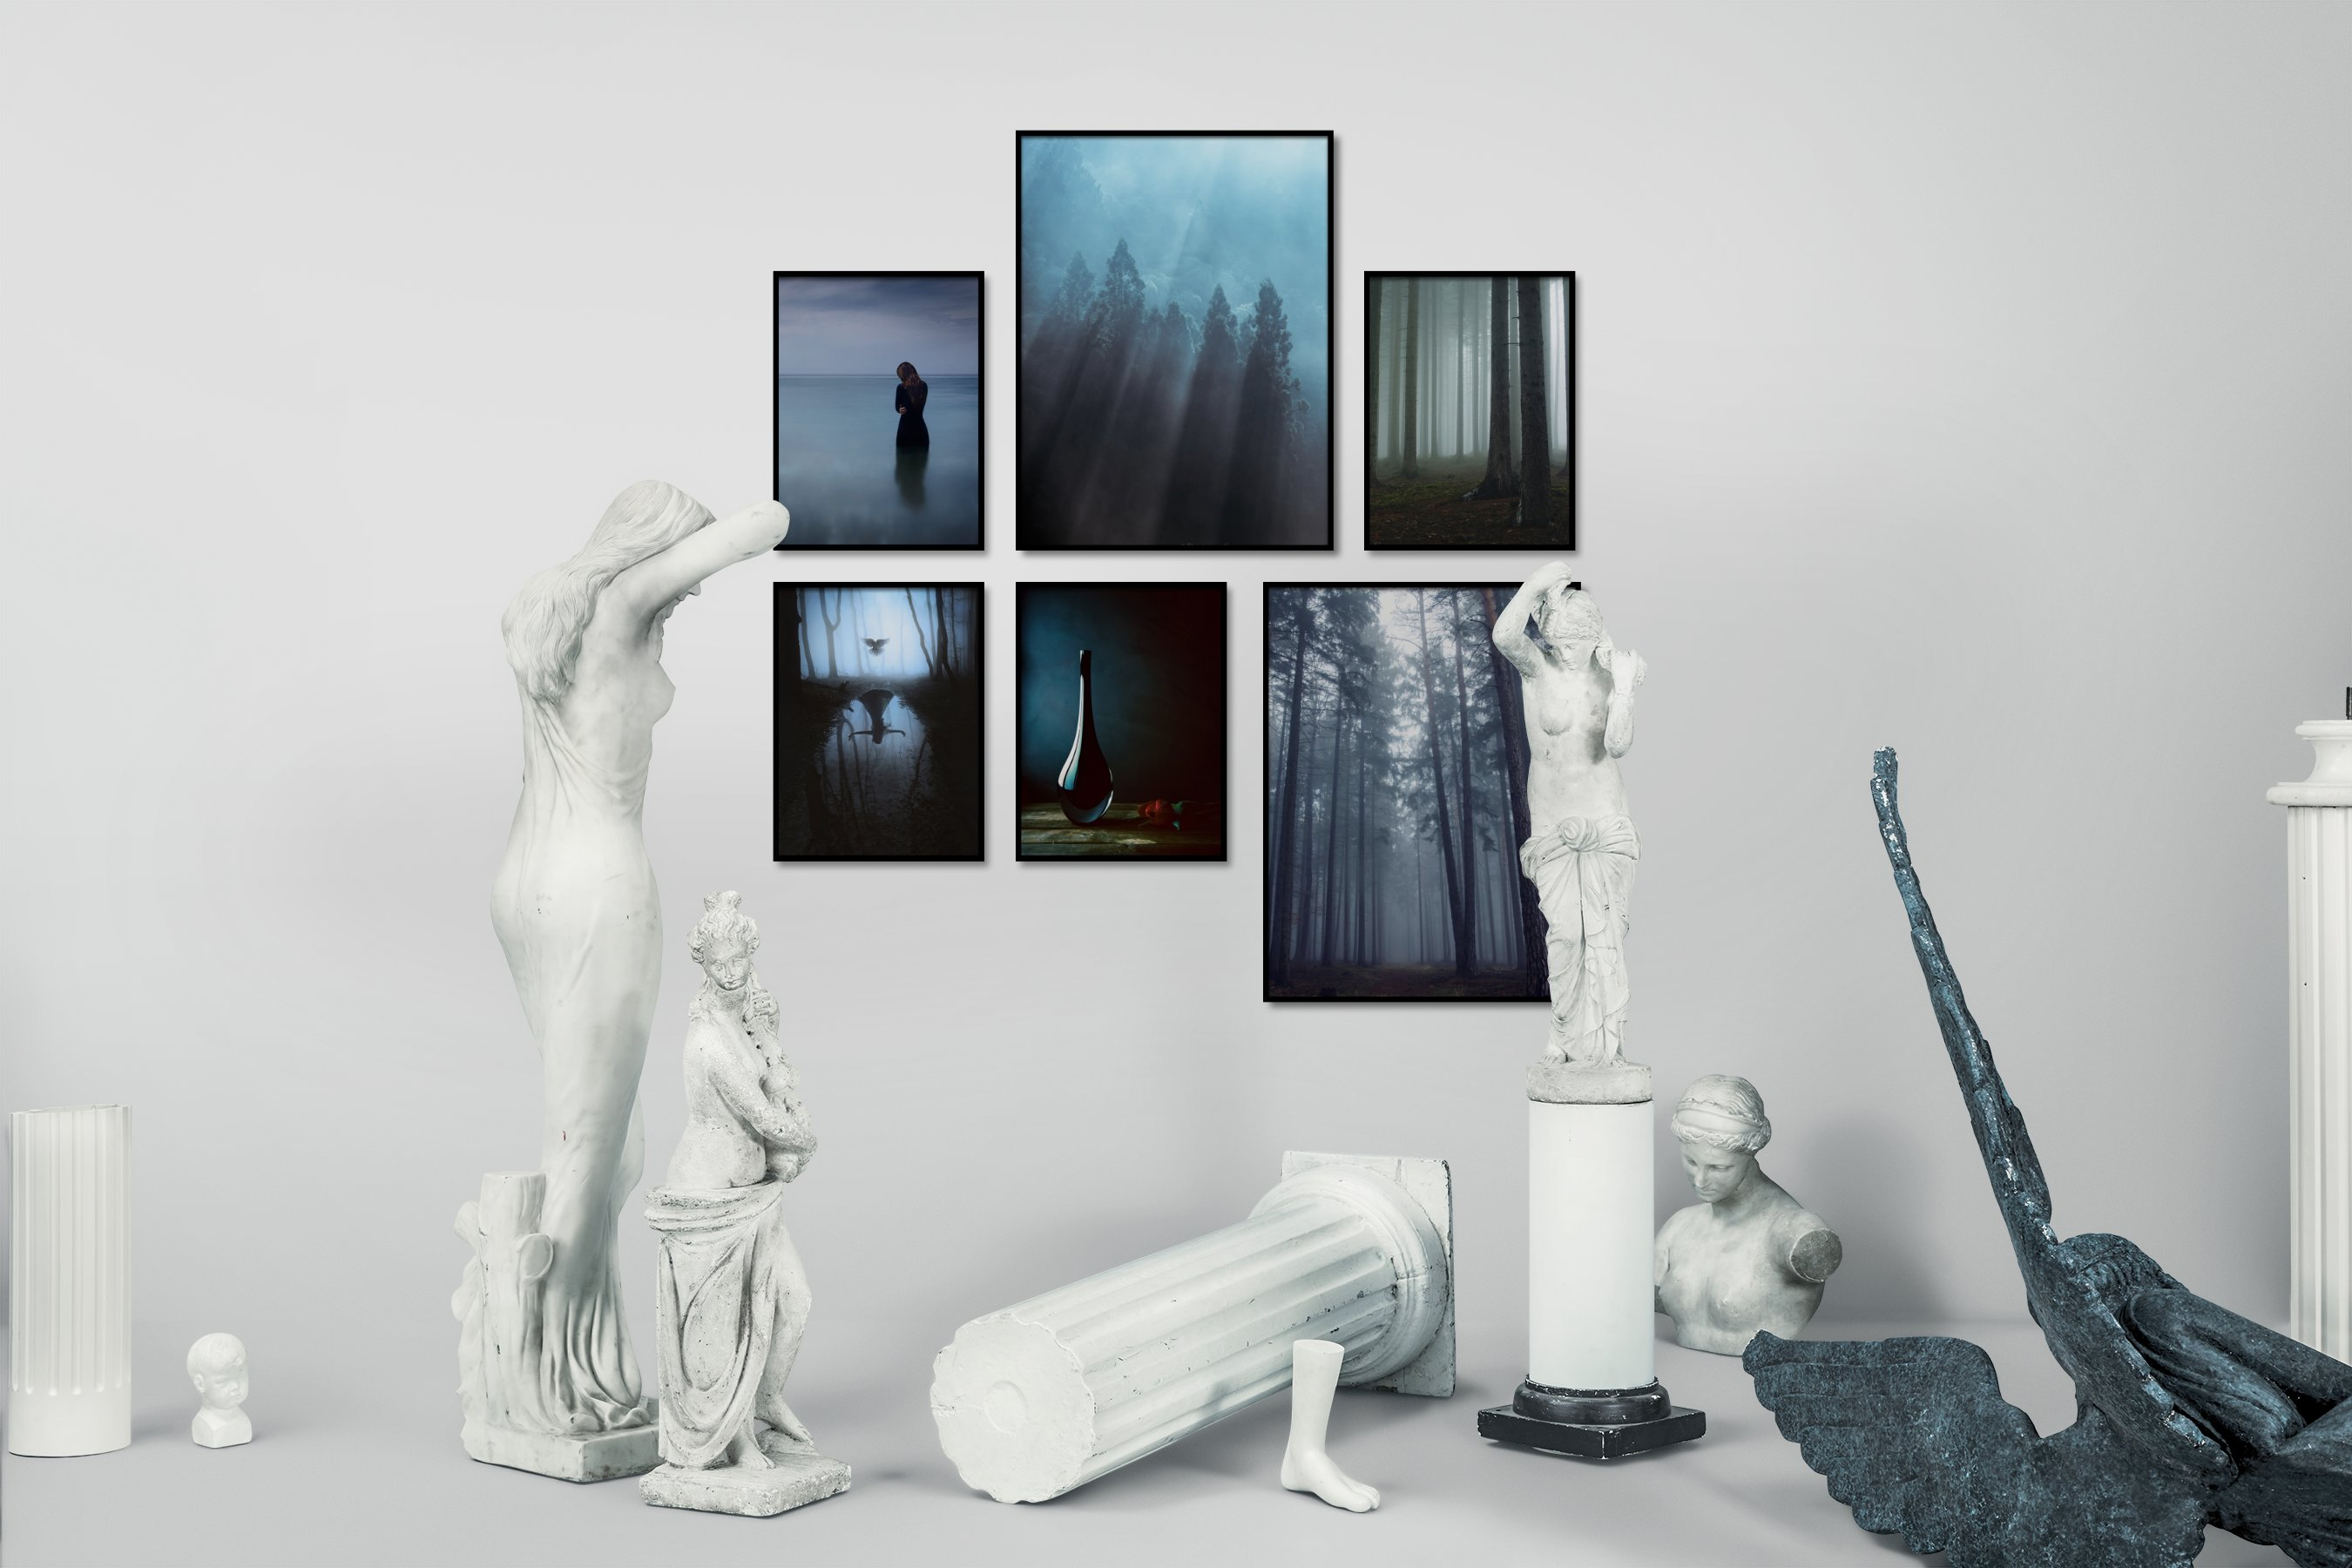 Gallery wall idea with six framed pictures arranged on a wall depicting For the Minimalist, Beach & Water, Mindfulness, Nature, and Artsy